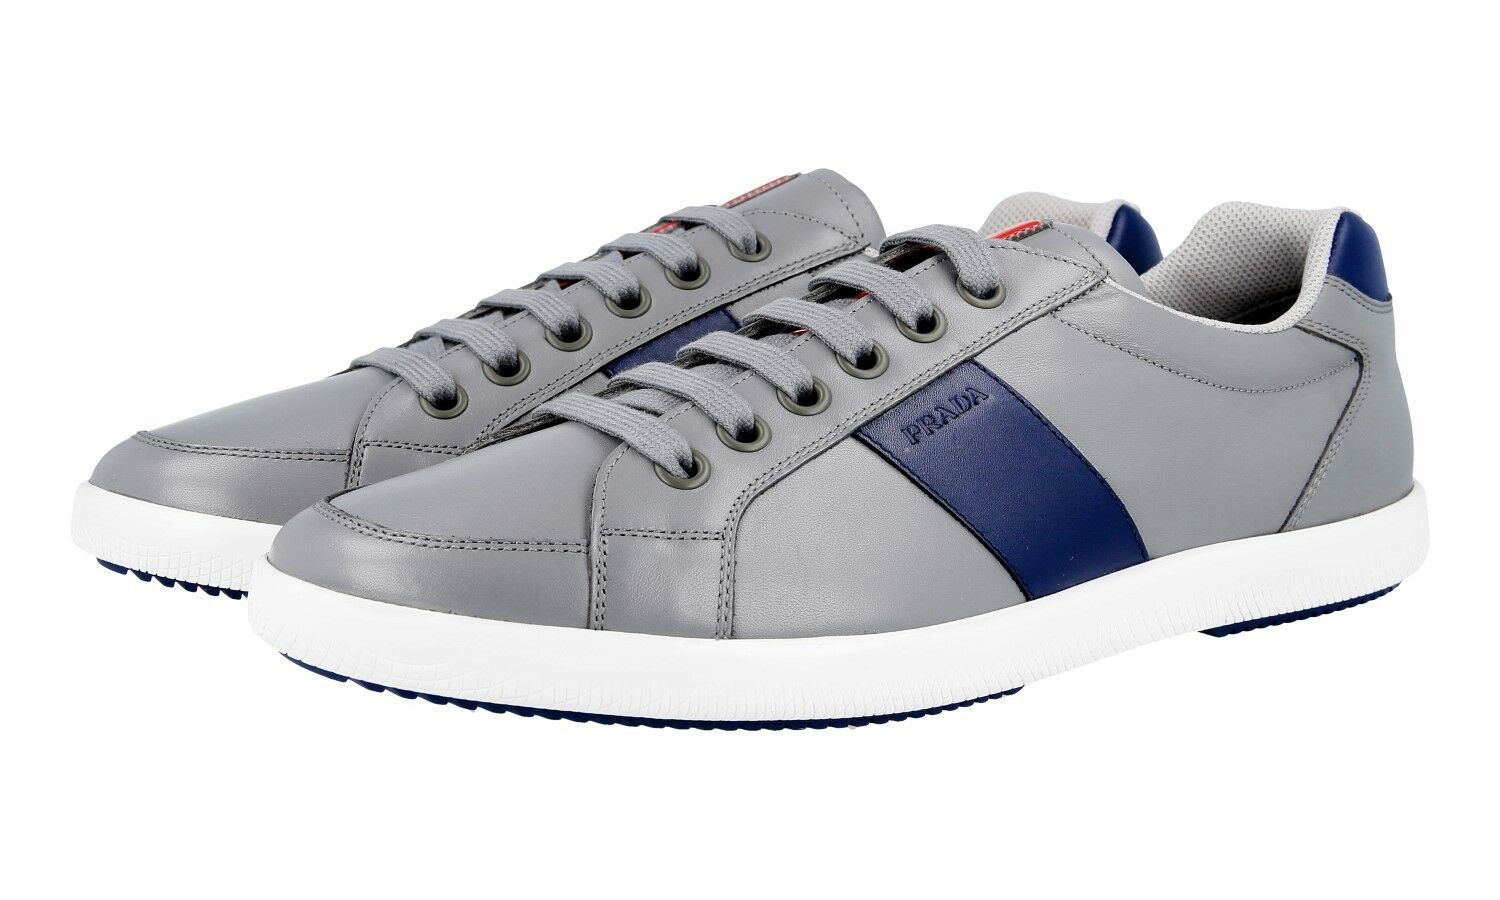 AUTHENTIC LUXURY PRADA SNEAKERS SHOES 4E2845 GREY BLUE NEW US 11